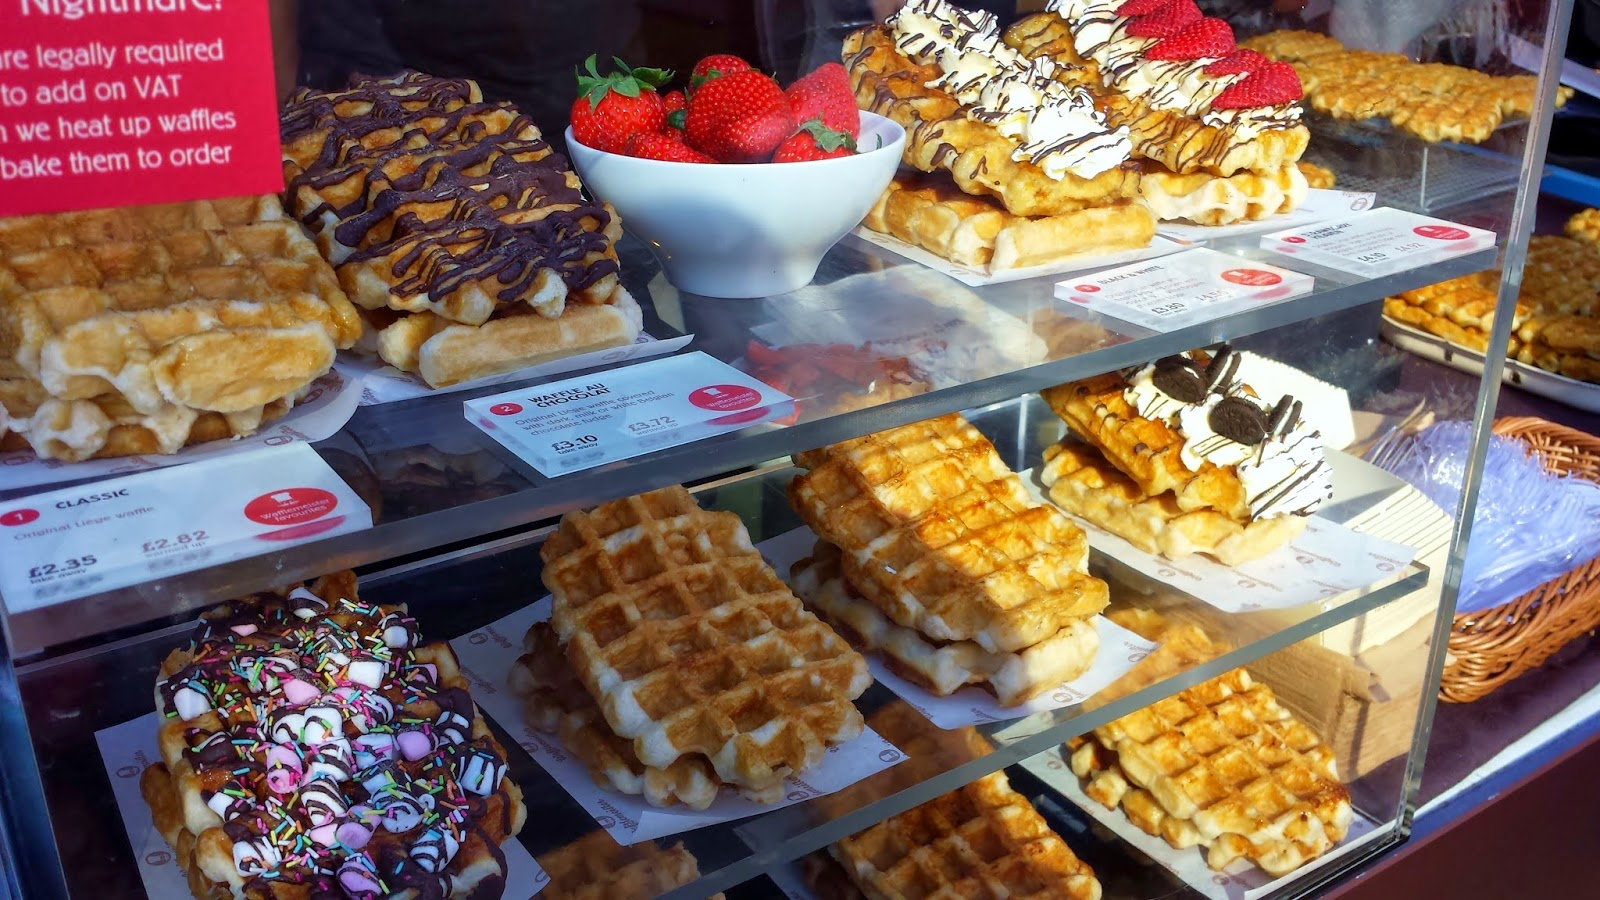 Delicious waffles at a stand in Portabello